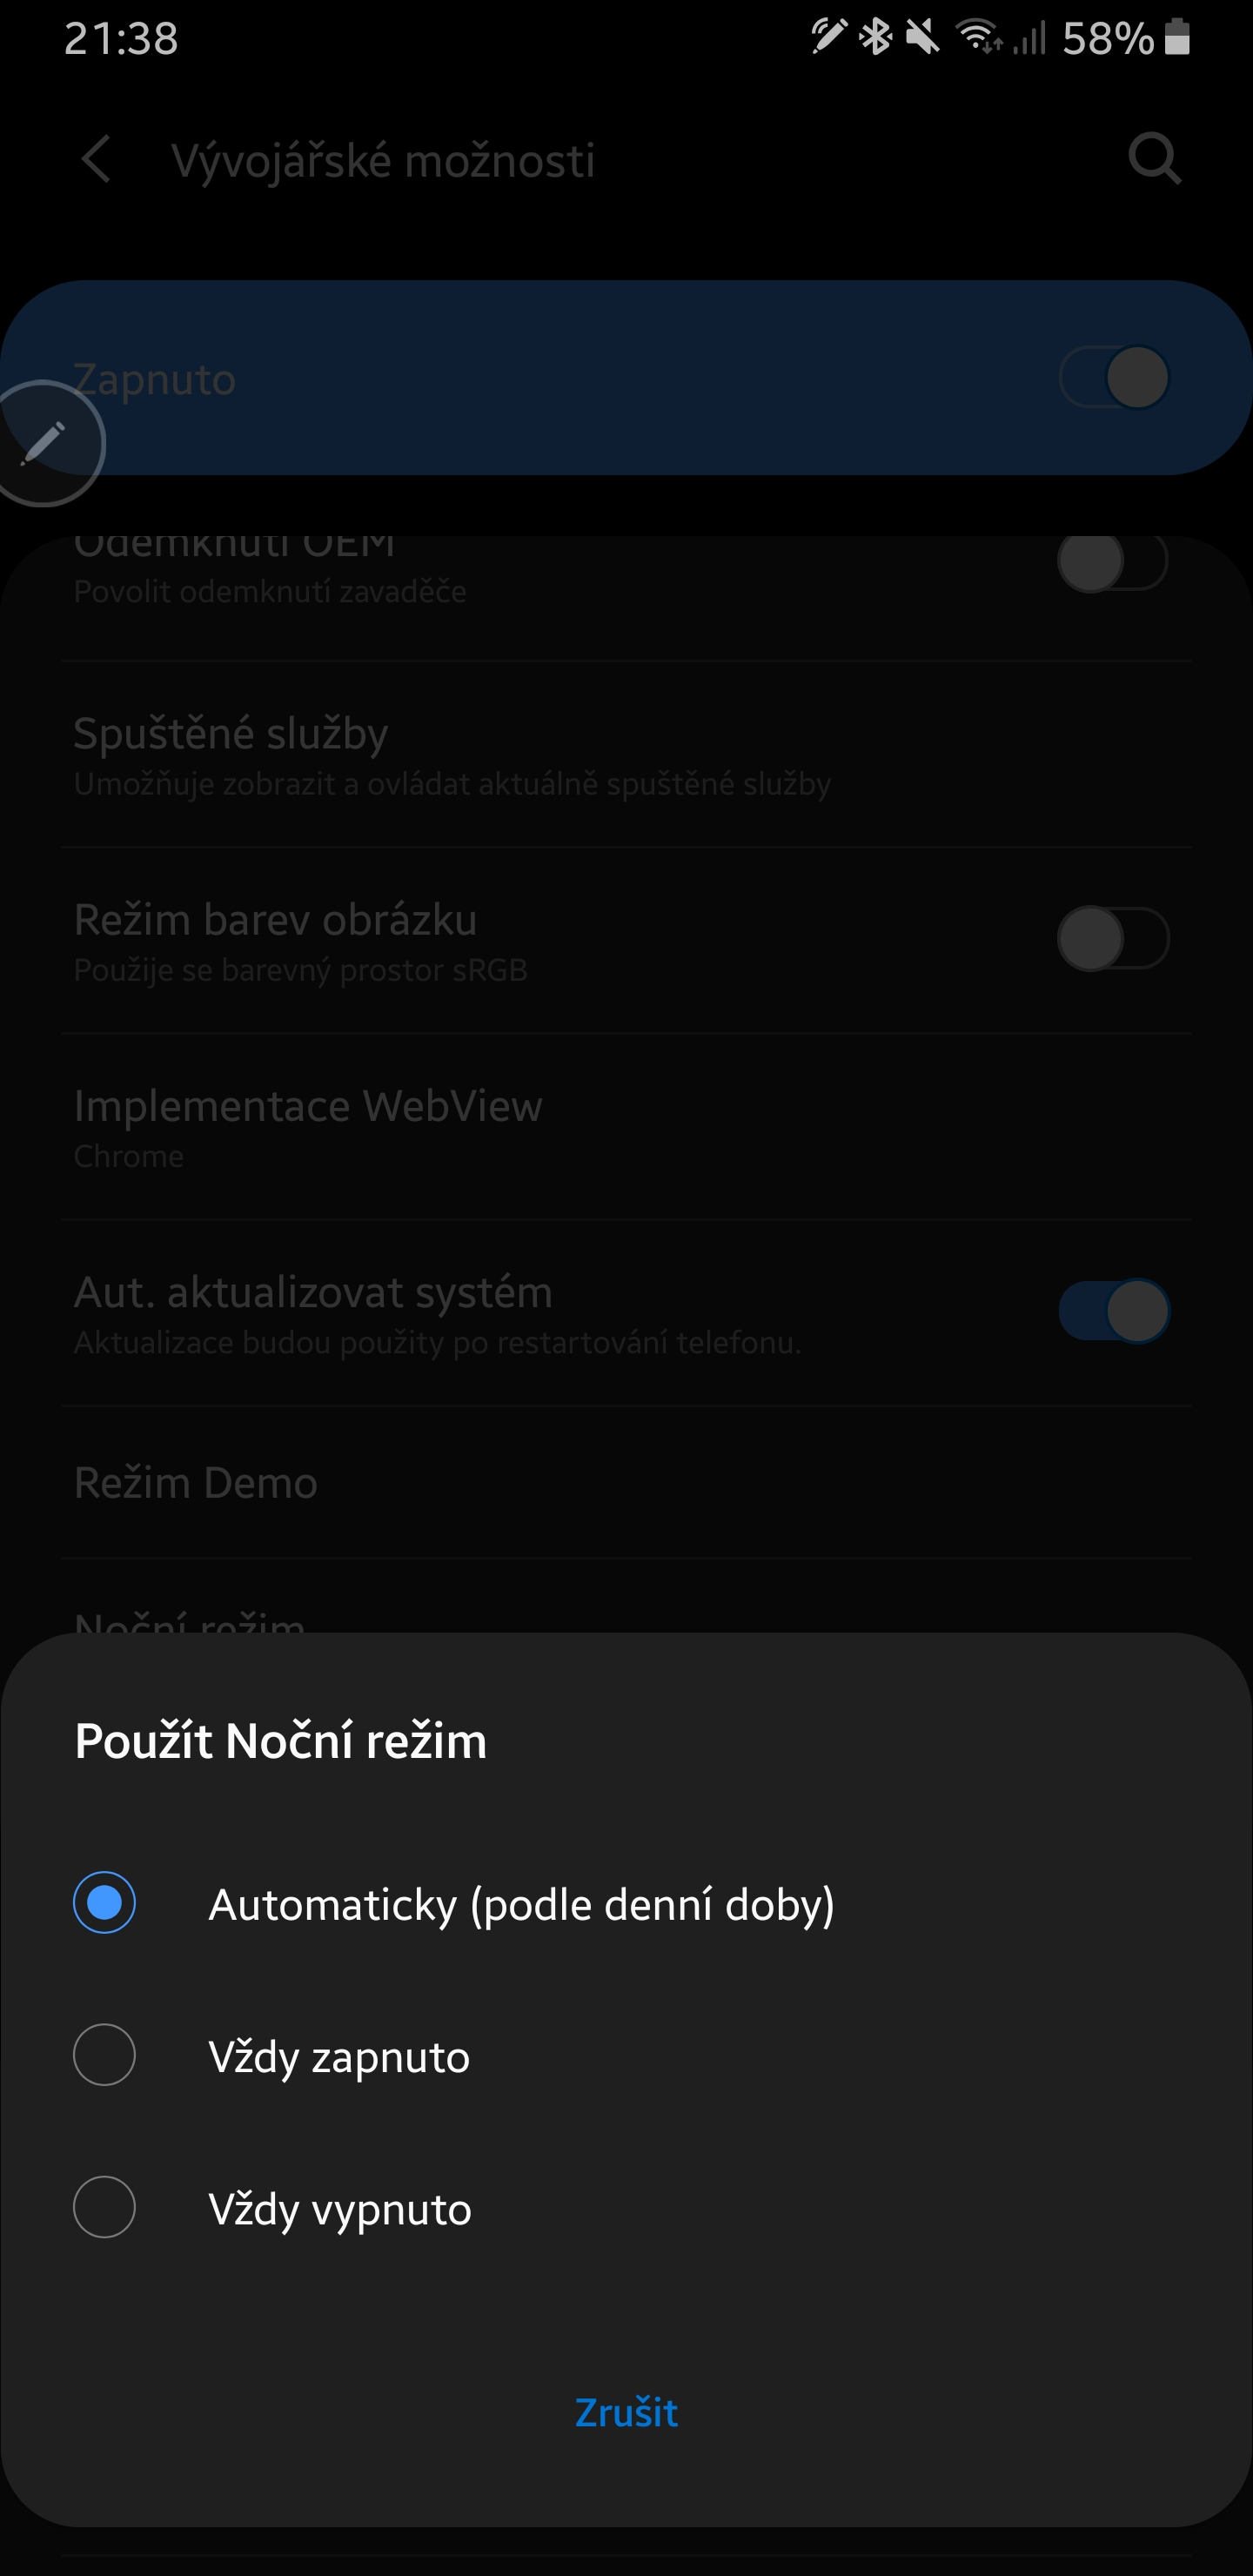 Screenshot_20190501-213813_Settings.jpg